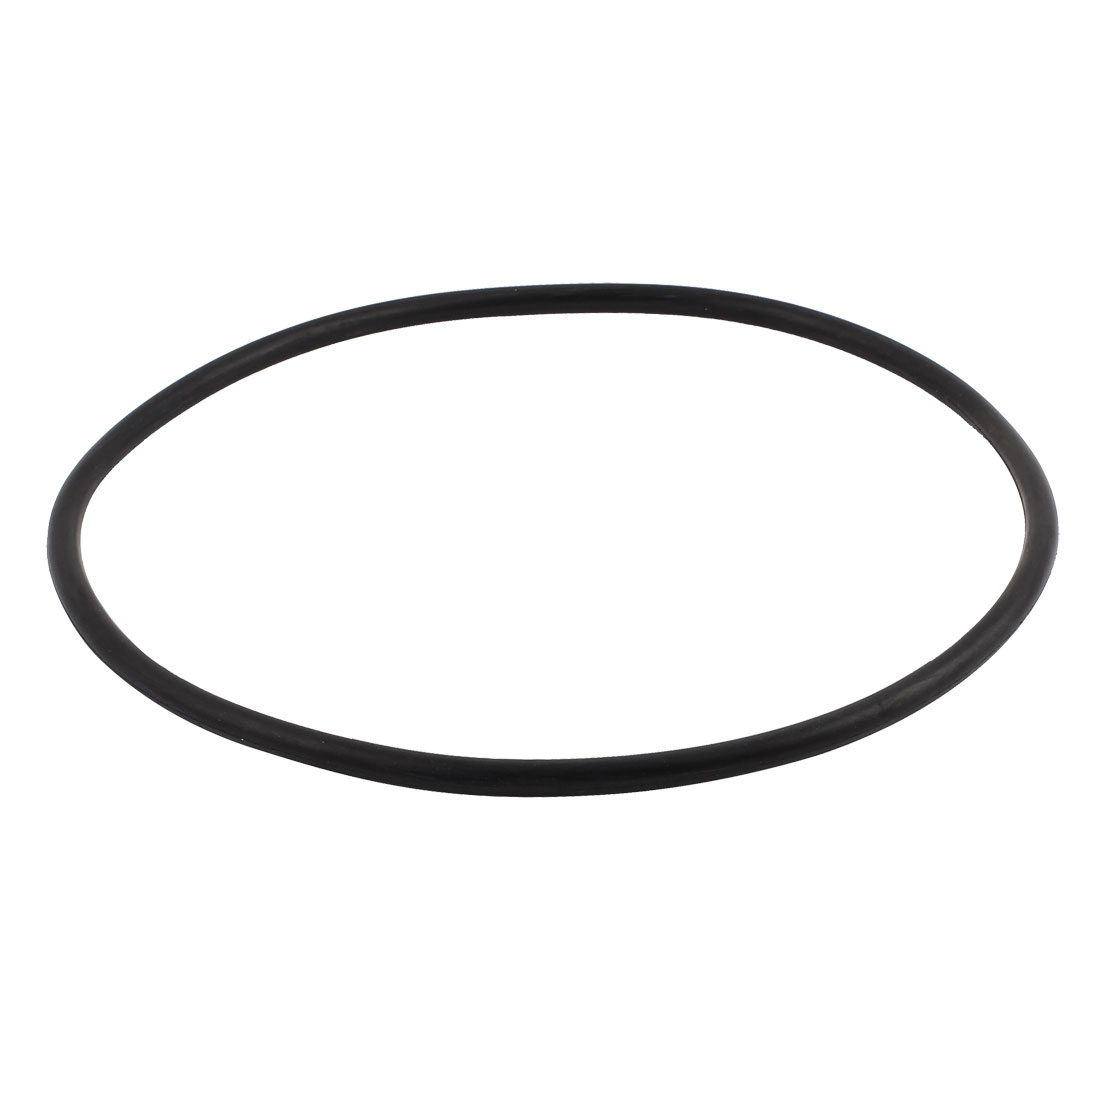 Black Universal O-Ring 255mm x 8.6mm BUNA-N Material Oil Seal Washers Grommets